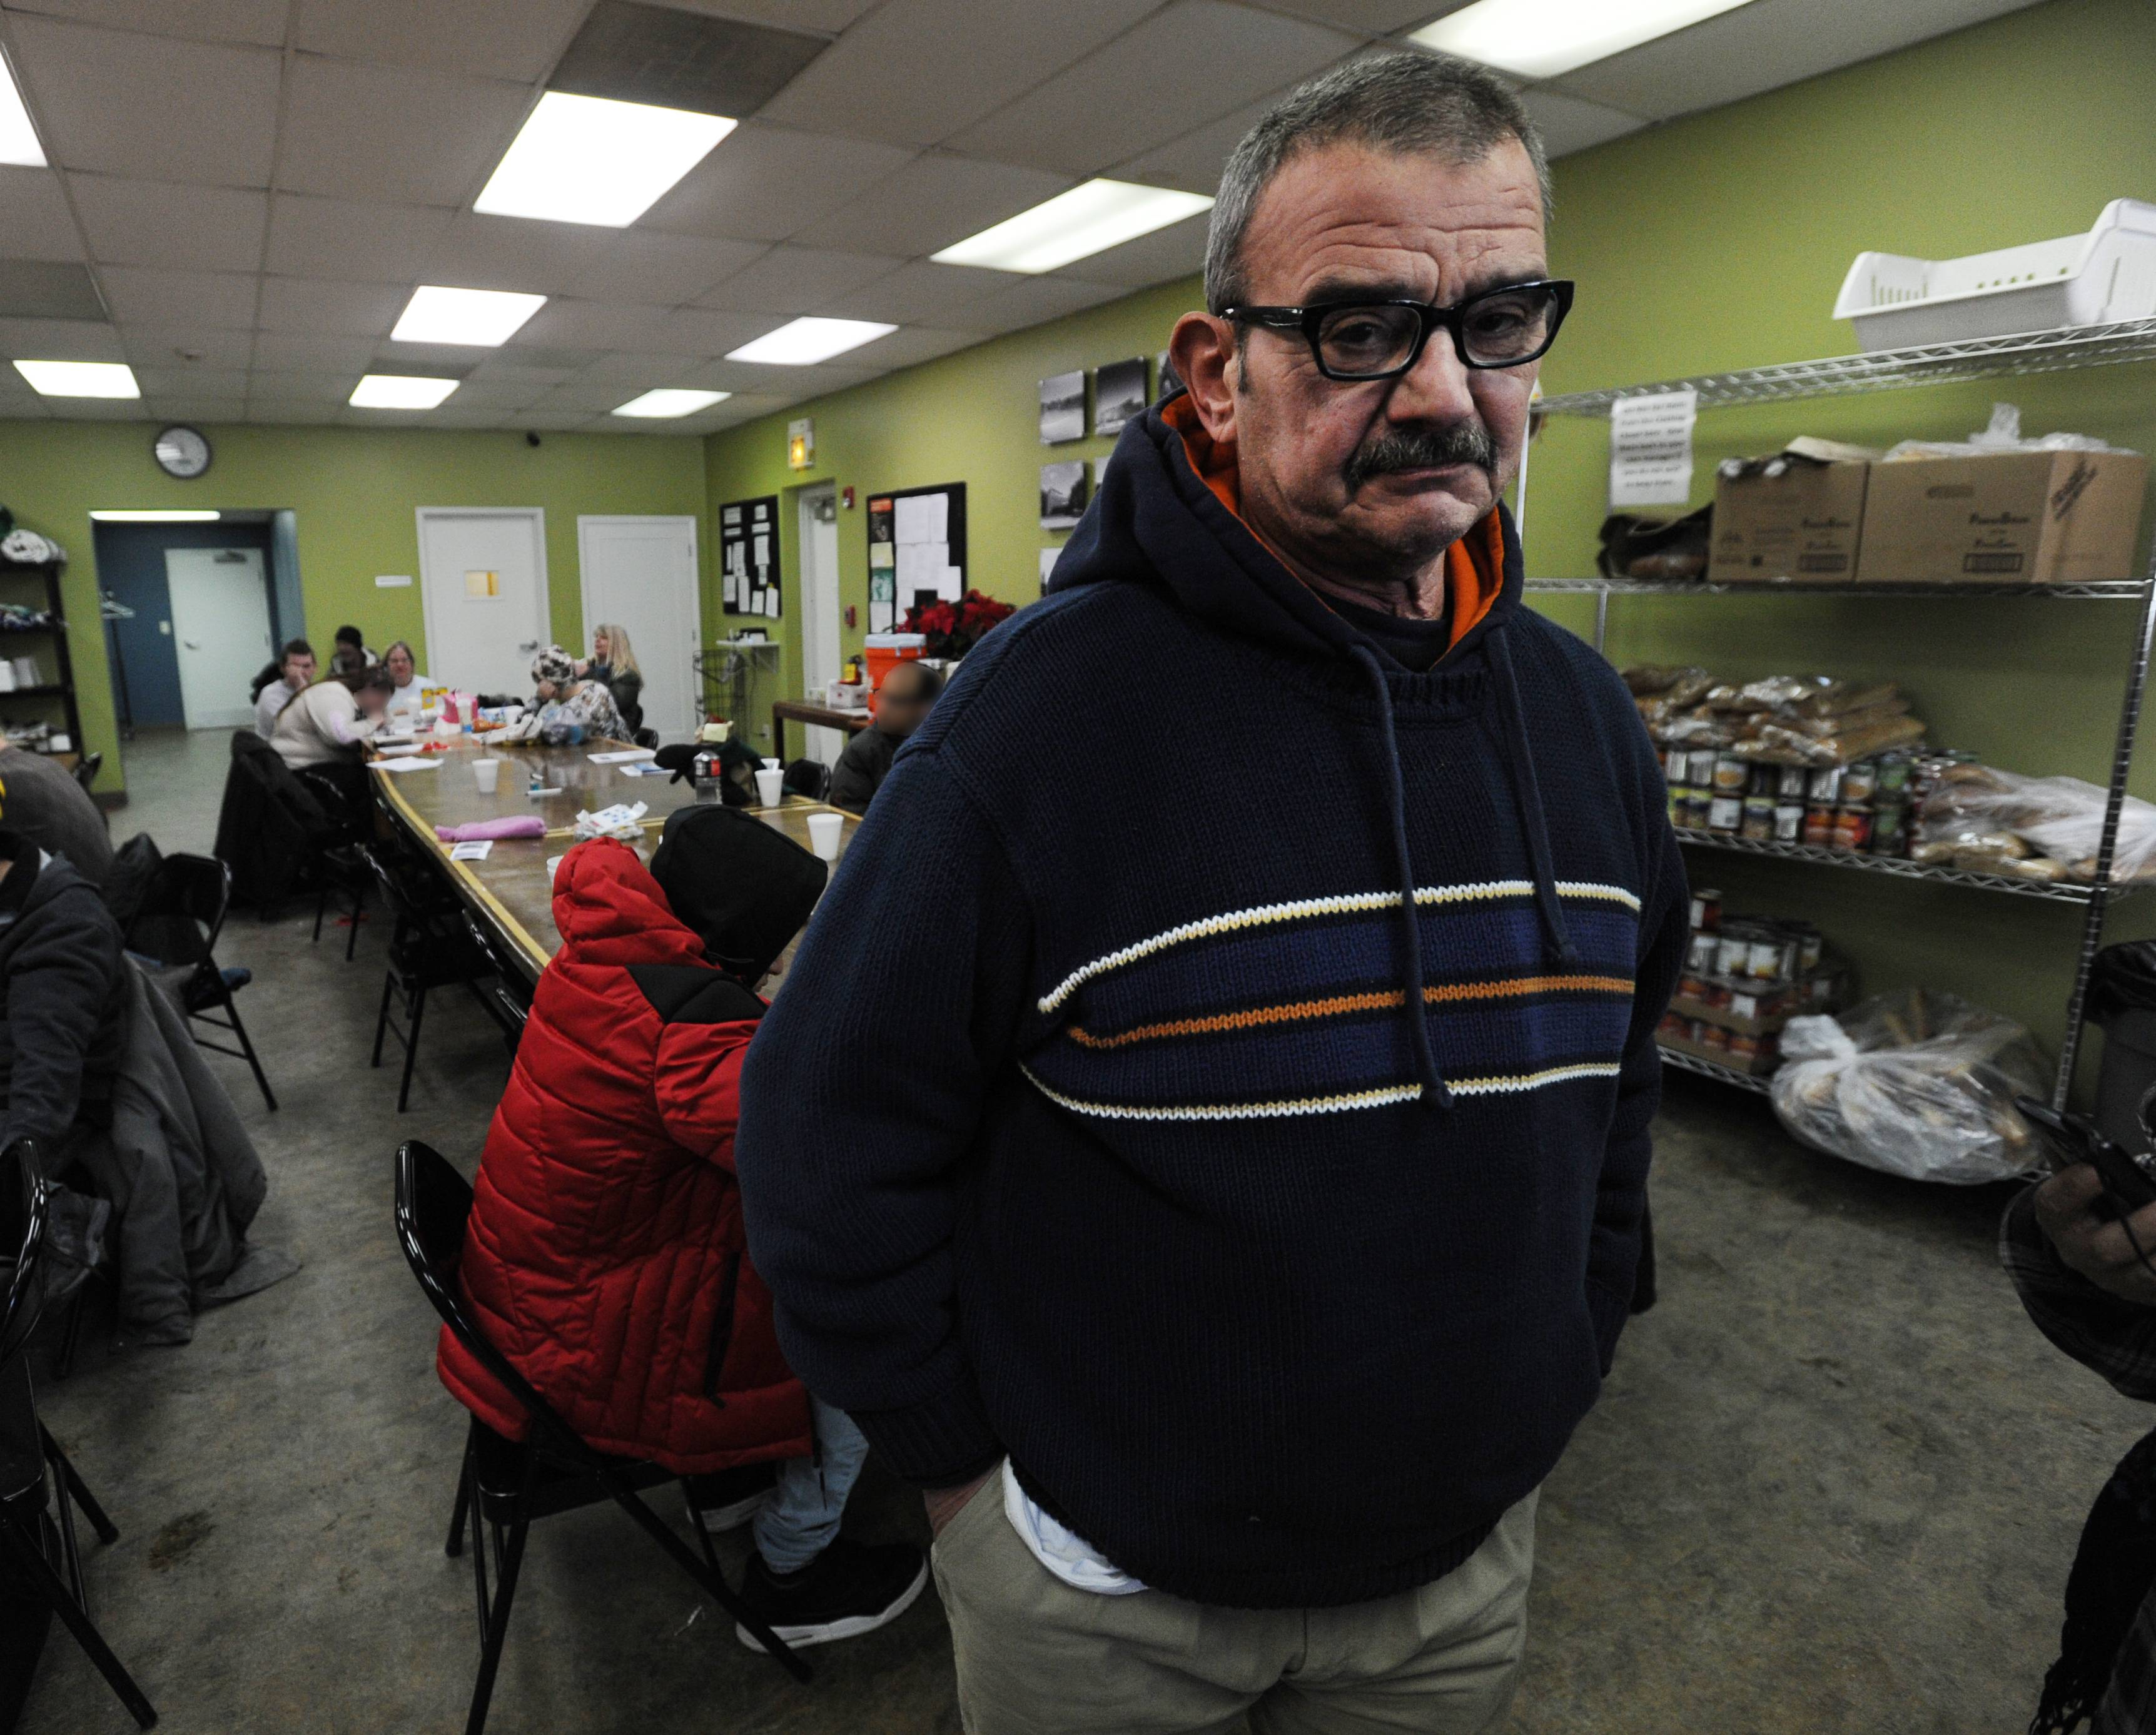 Suburban warming centers open, but crowds sparse